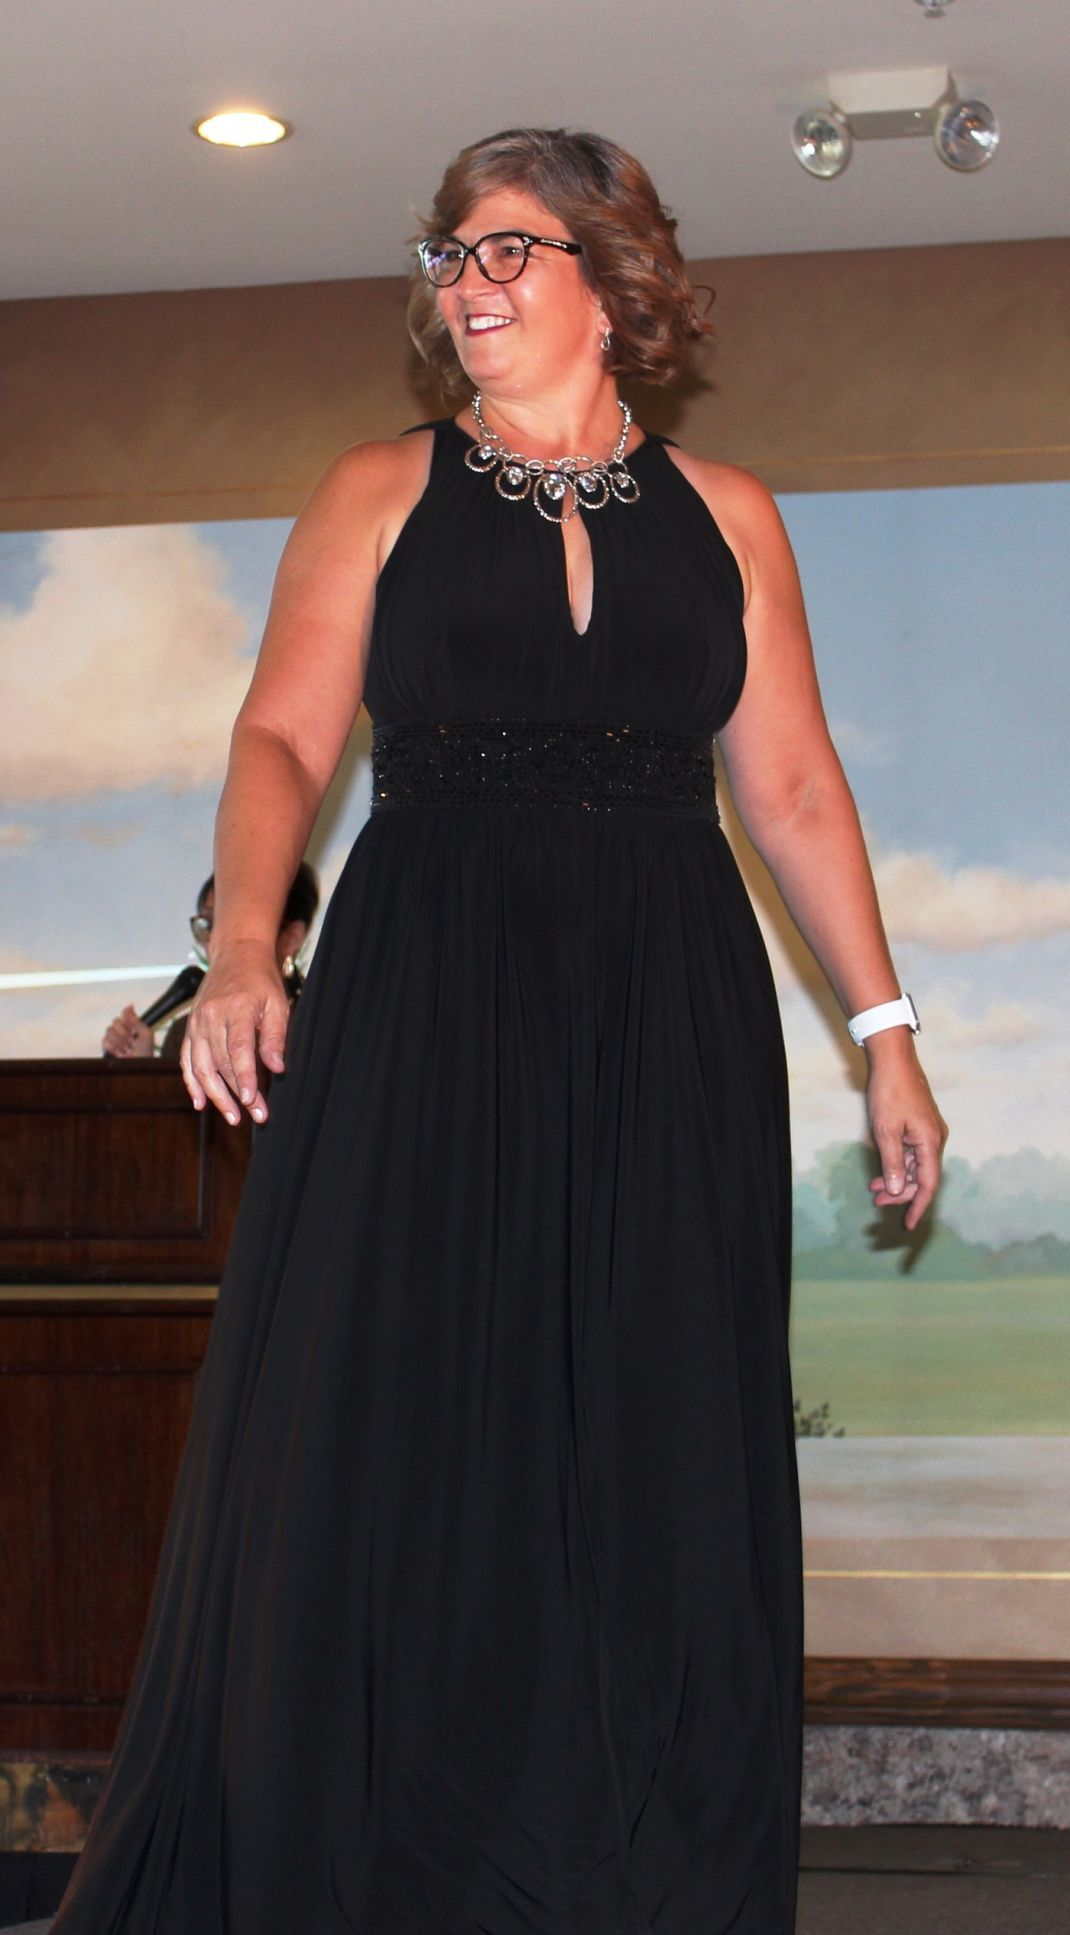 Annual fashion show helps TradeWinds carry out mission to aid hearing impaired and those with other disabilities